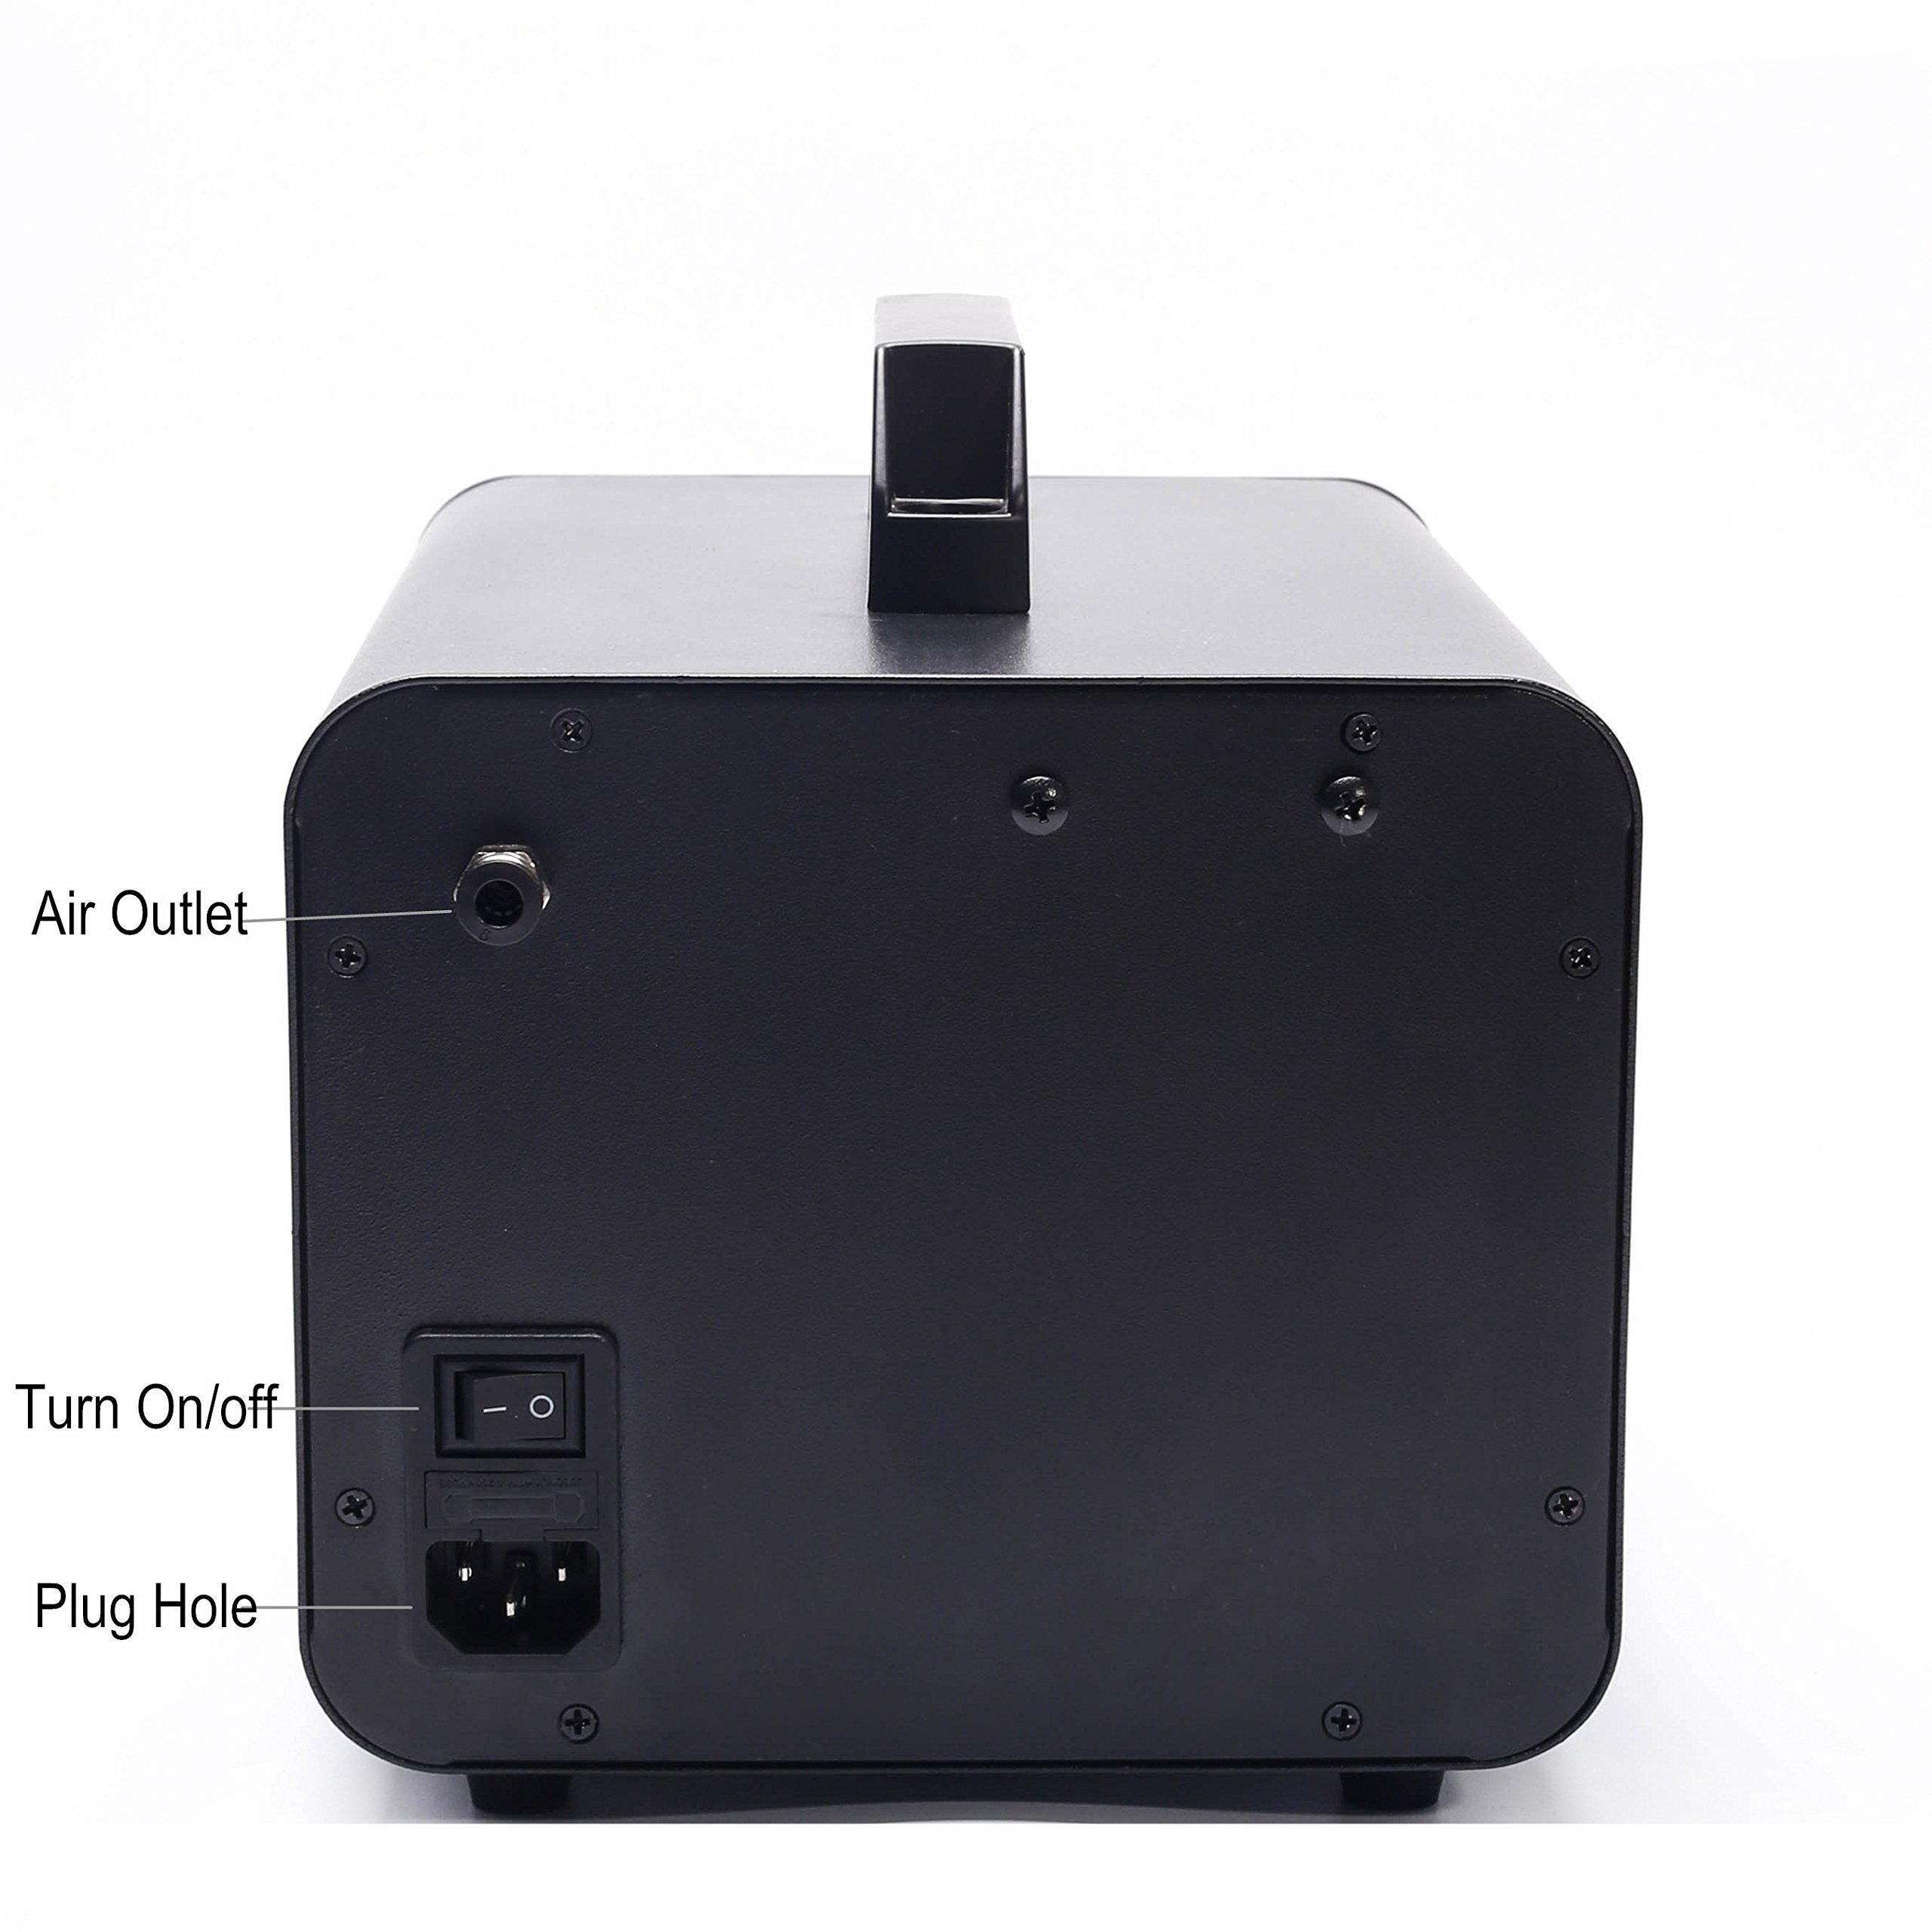 Kevinleo Scent Air Machine Portable 16,200-21,500 Square Feet, Waterless 100% Pure Essential Oil, Excellent Timer Panel from Monday to Sunday. can Hook to Air Conditioners,500ml Cartridge by Kevinleo (Image #6)